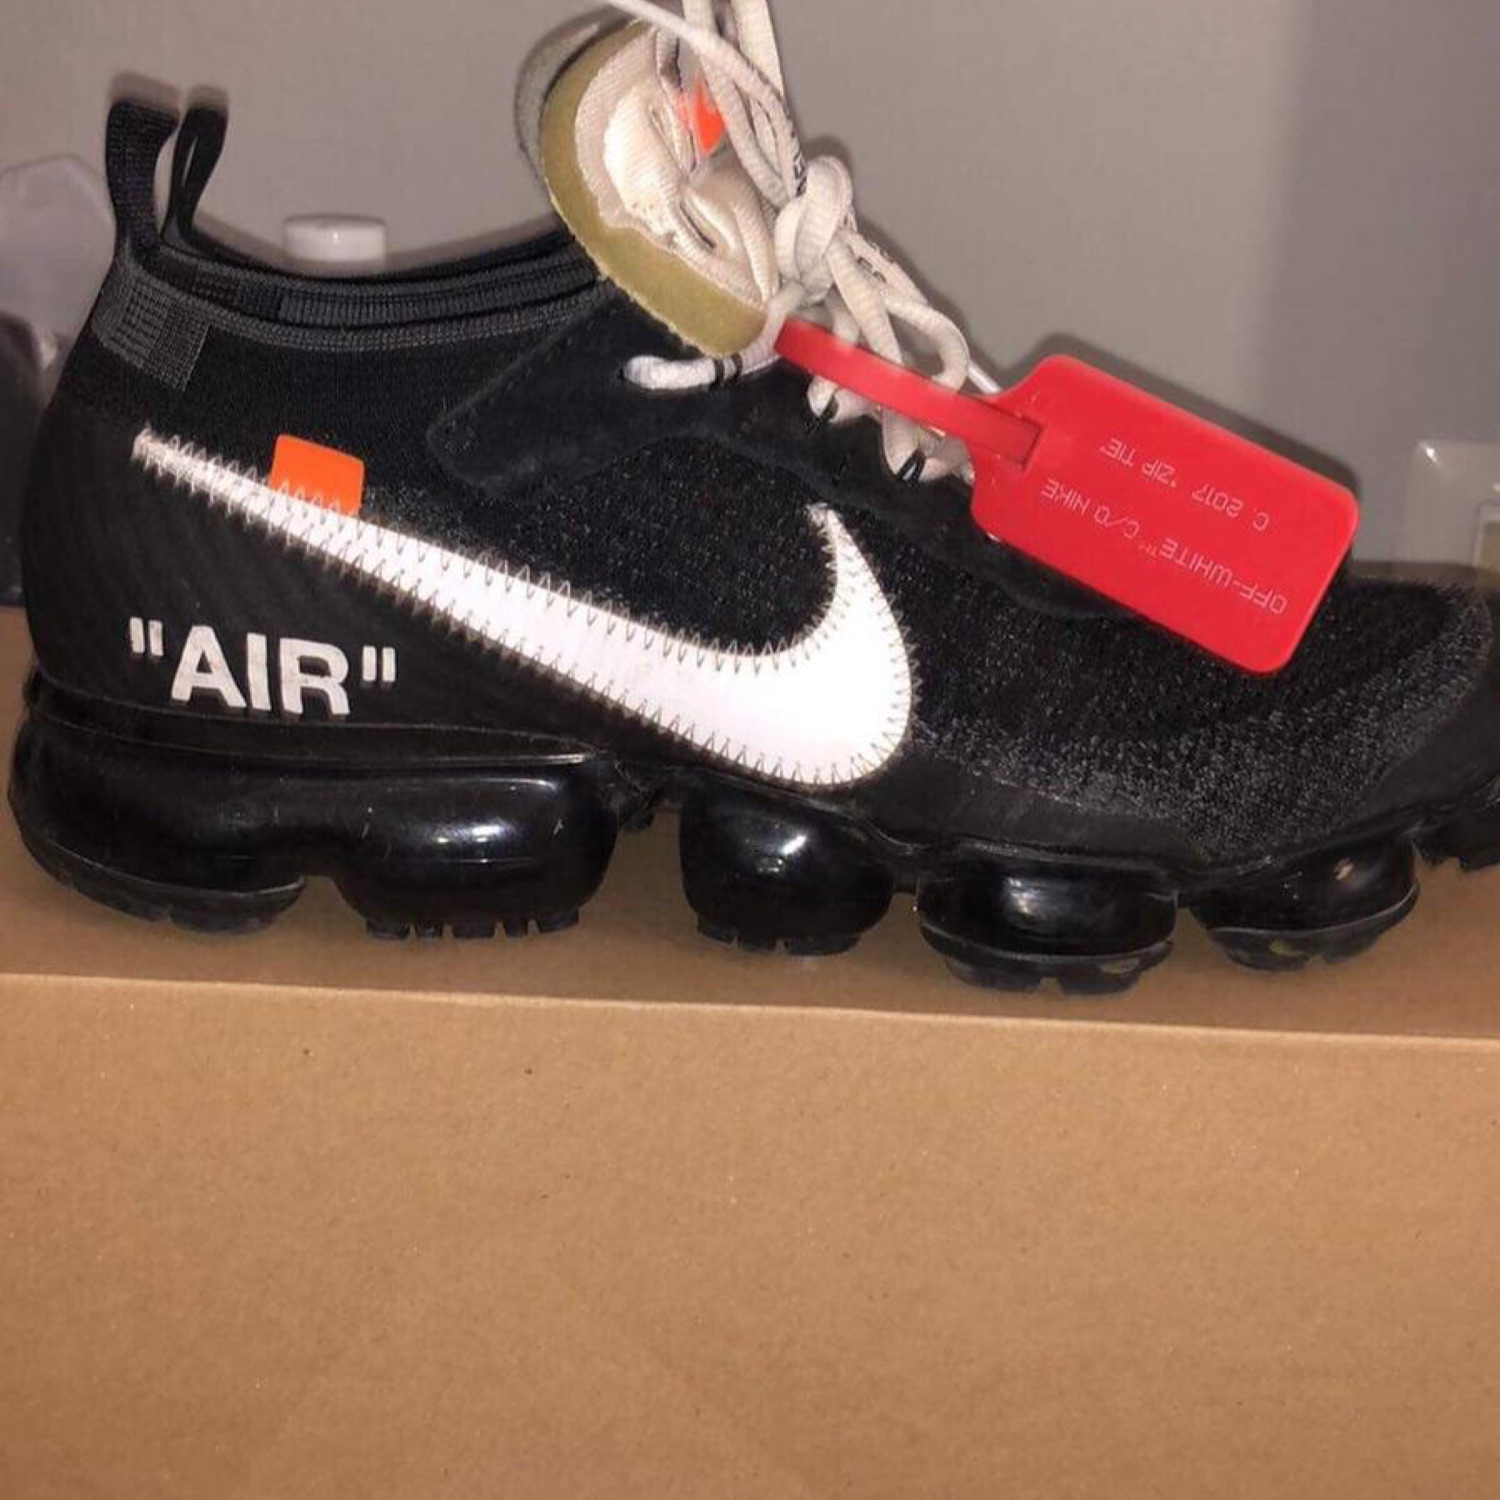 Nike Vapormax X Ow Og Condition 9/10